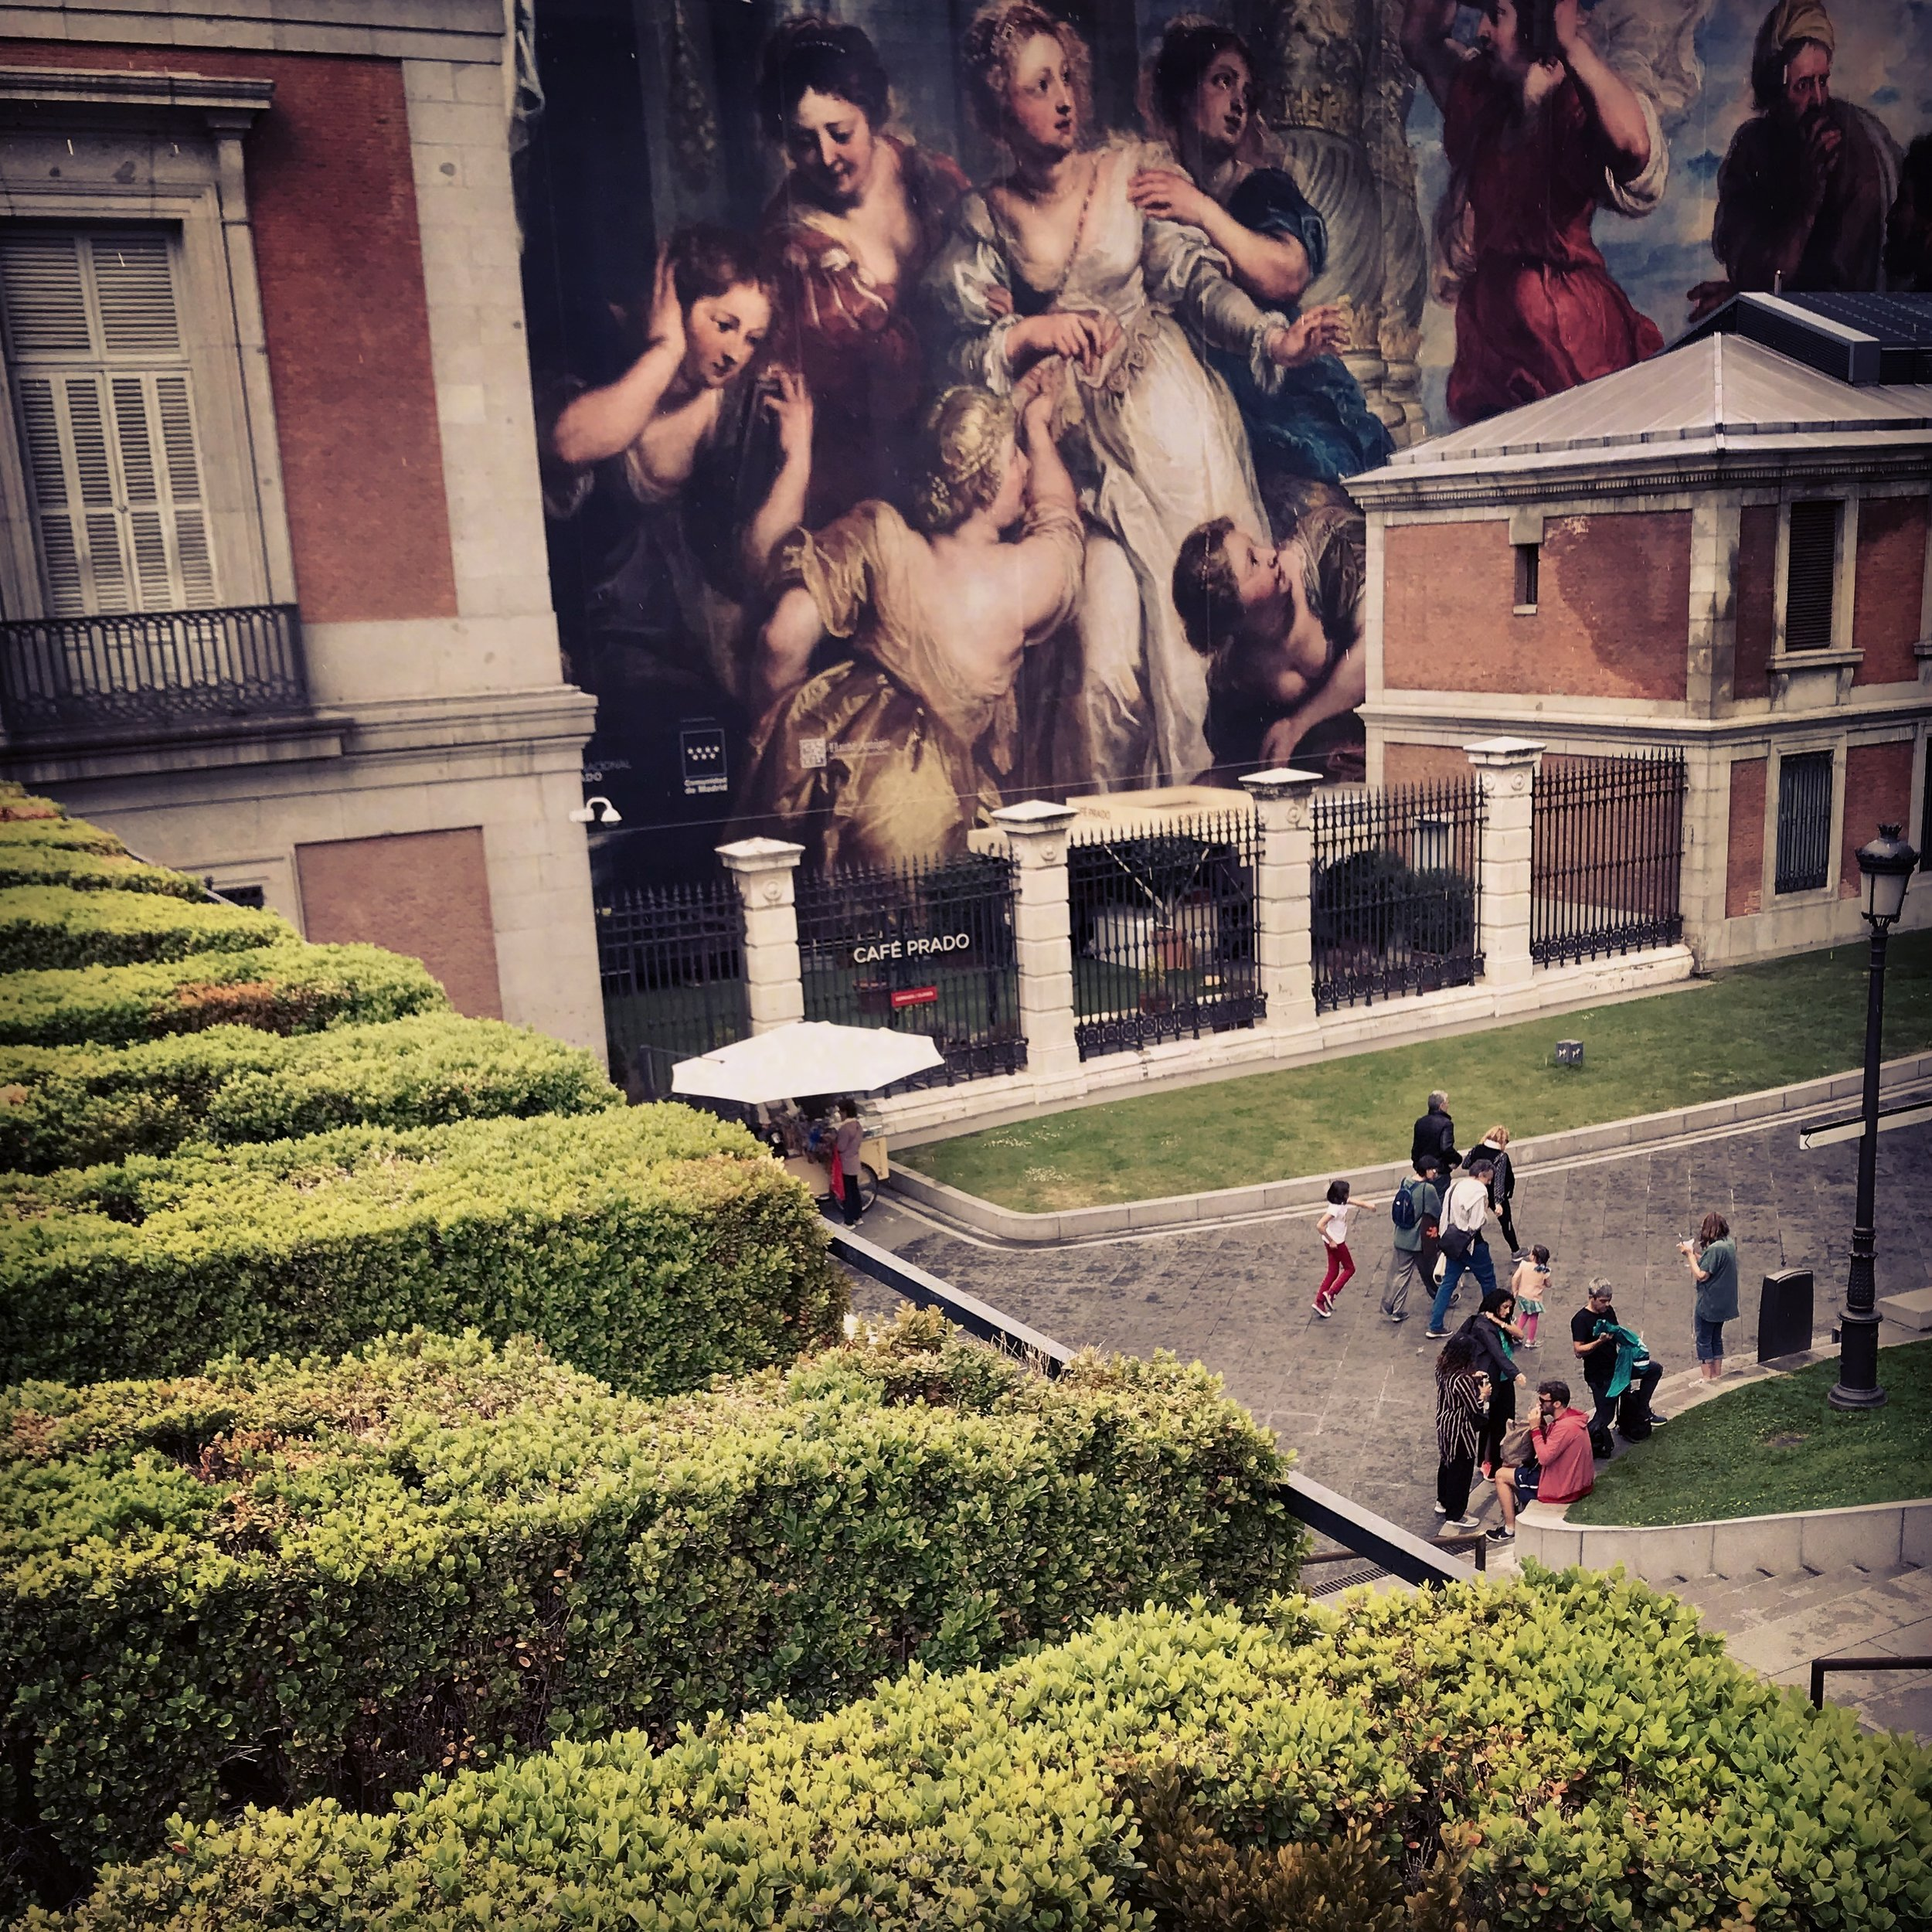 View of the Prado from above.